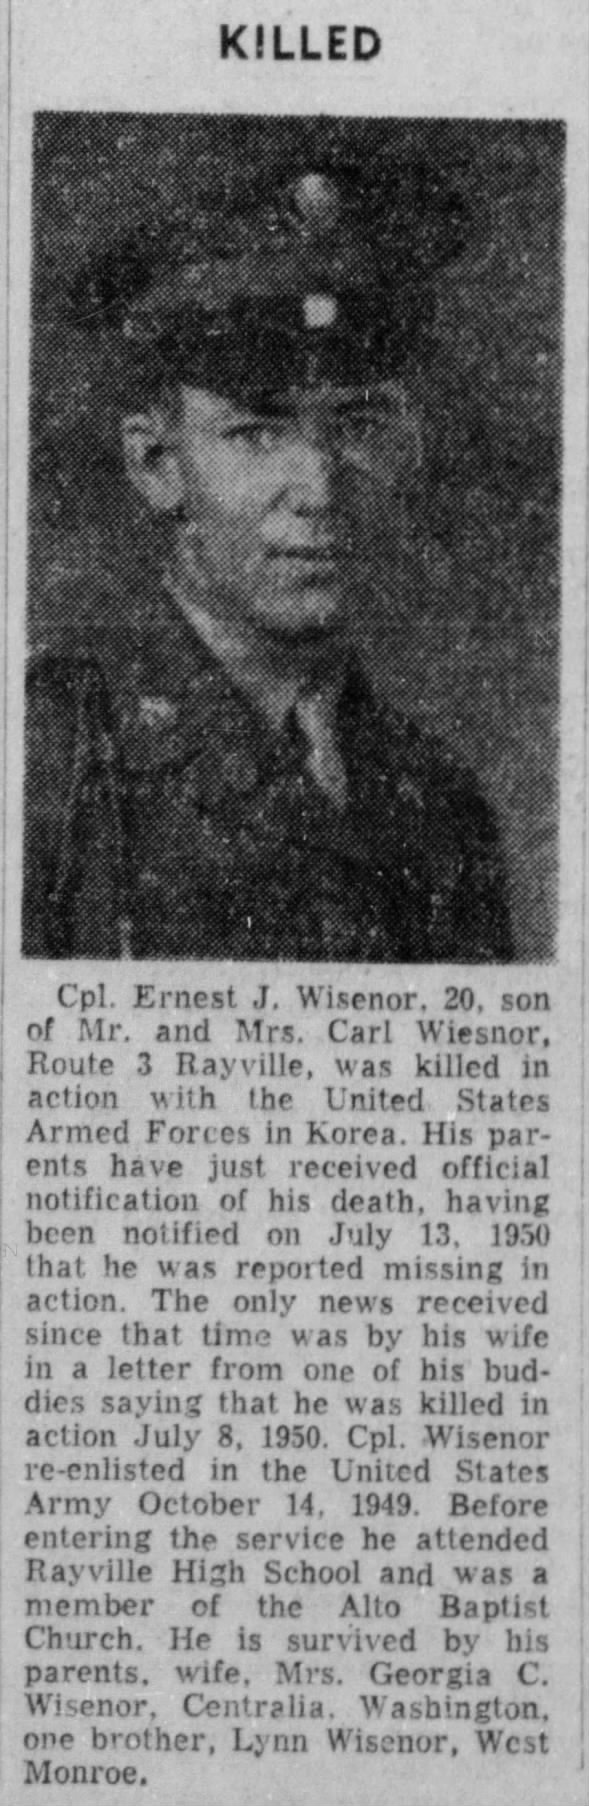 Ernest J. Wisenor Killed in Action